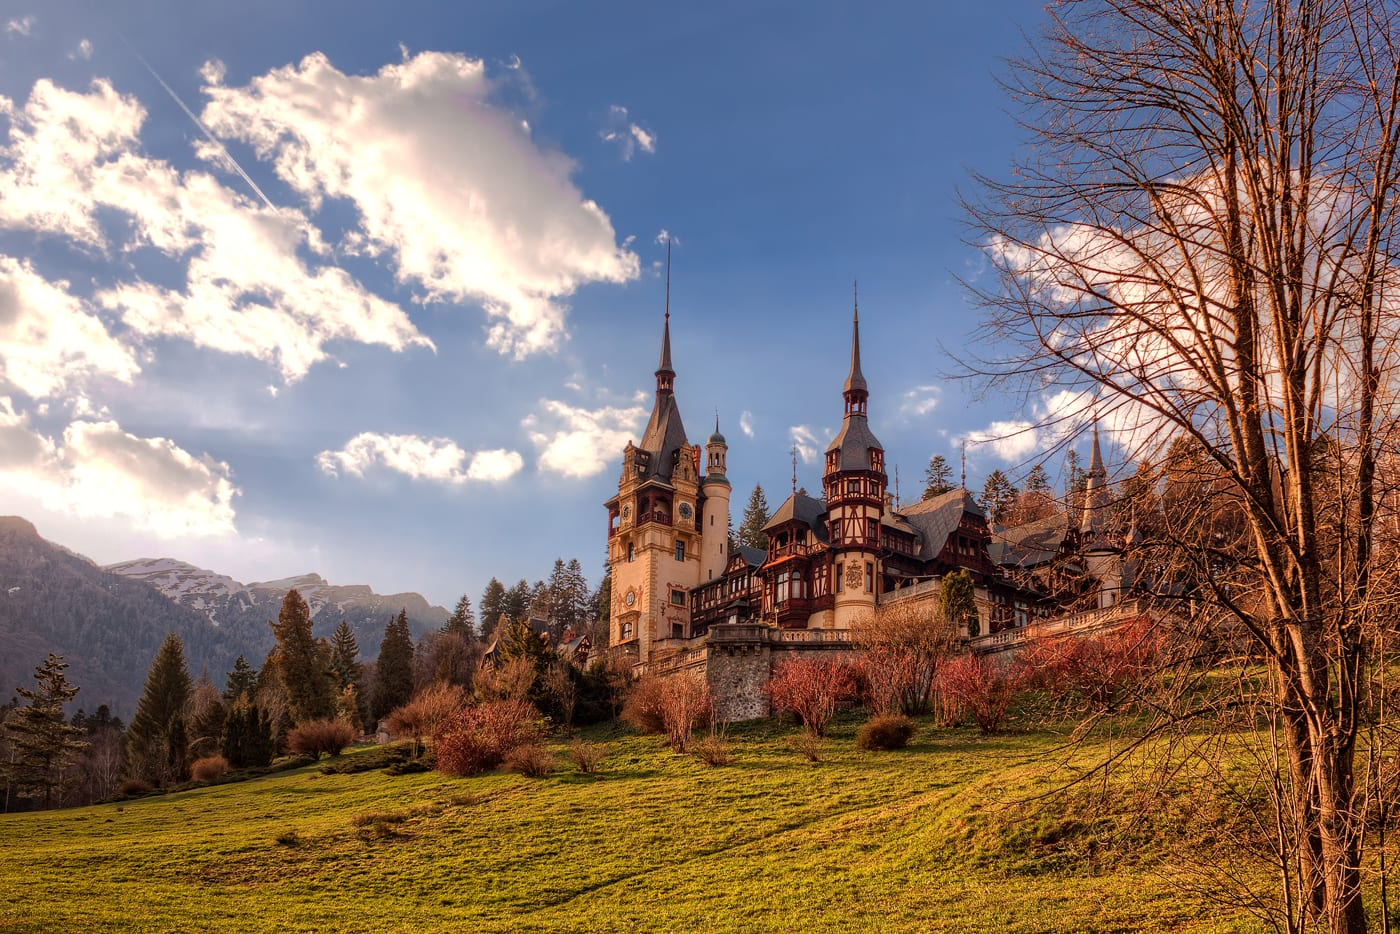 Peleș Castle in Sinaia